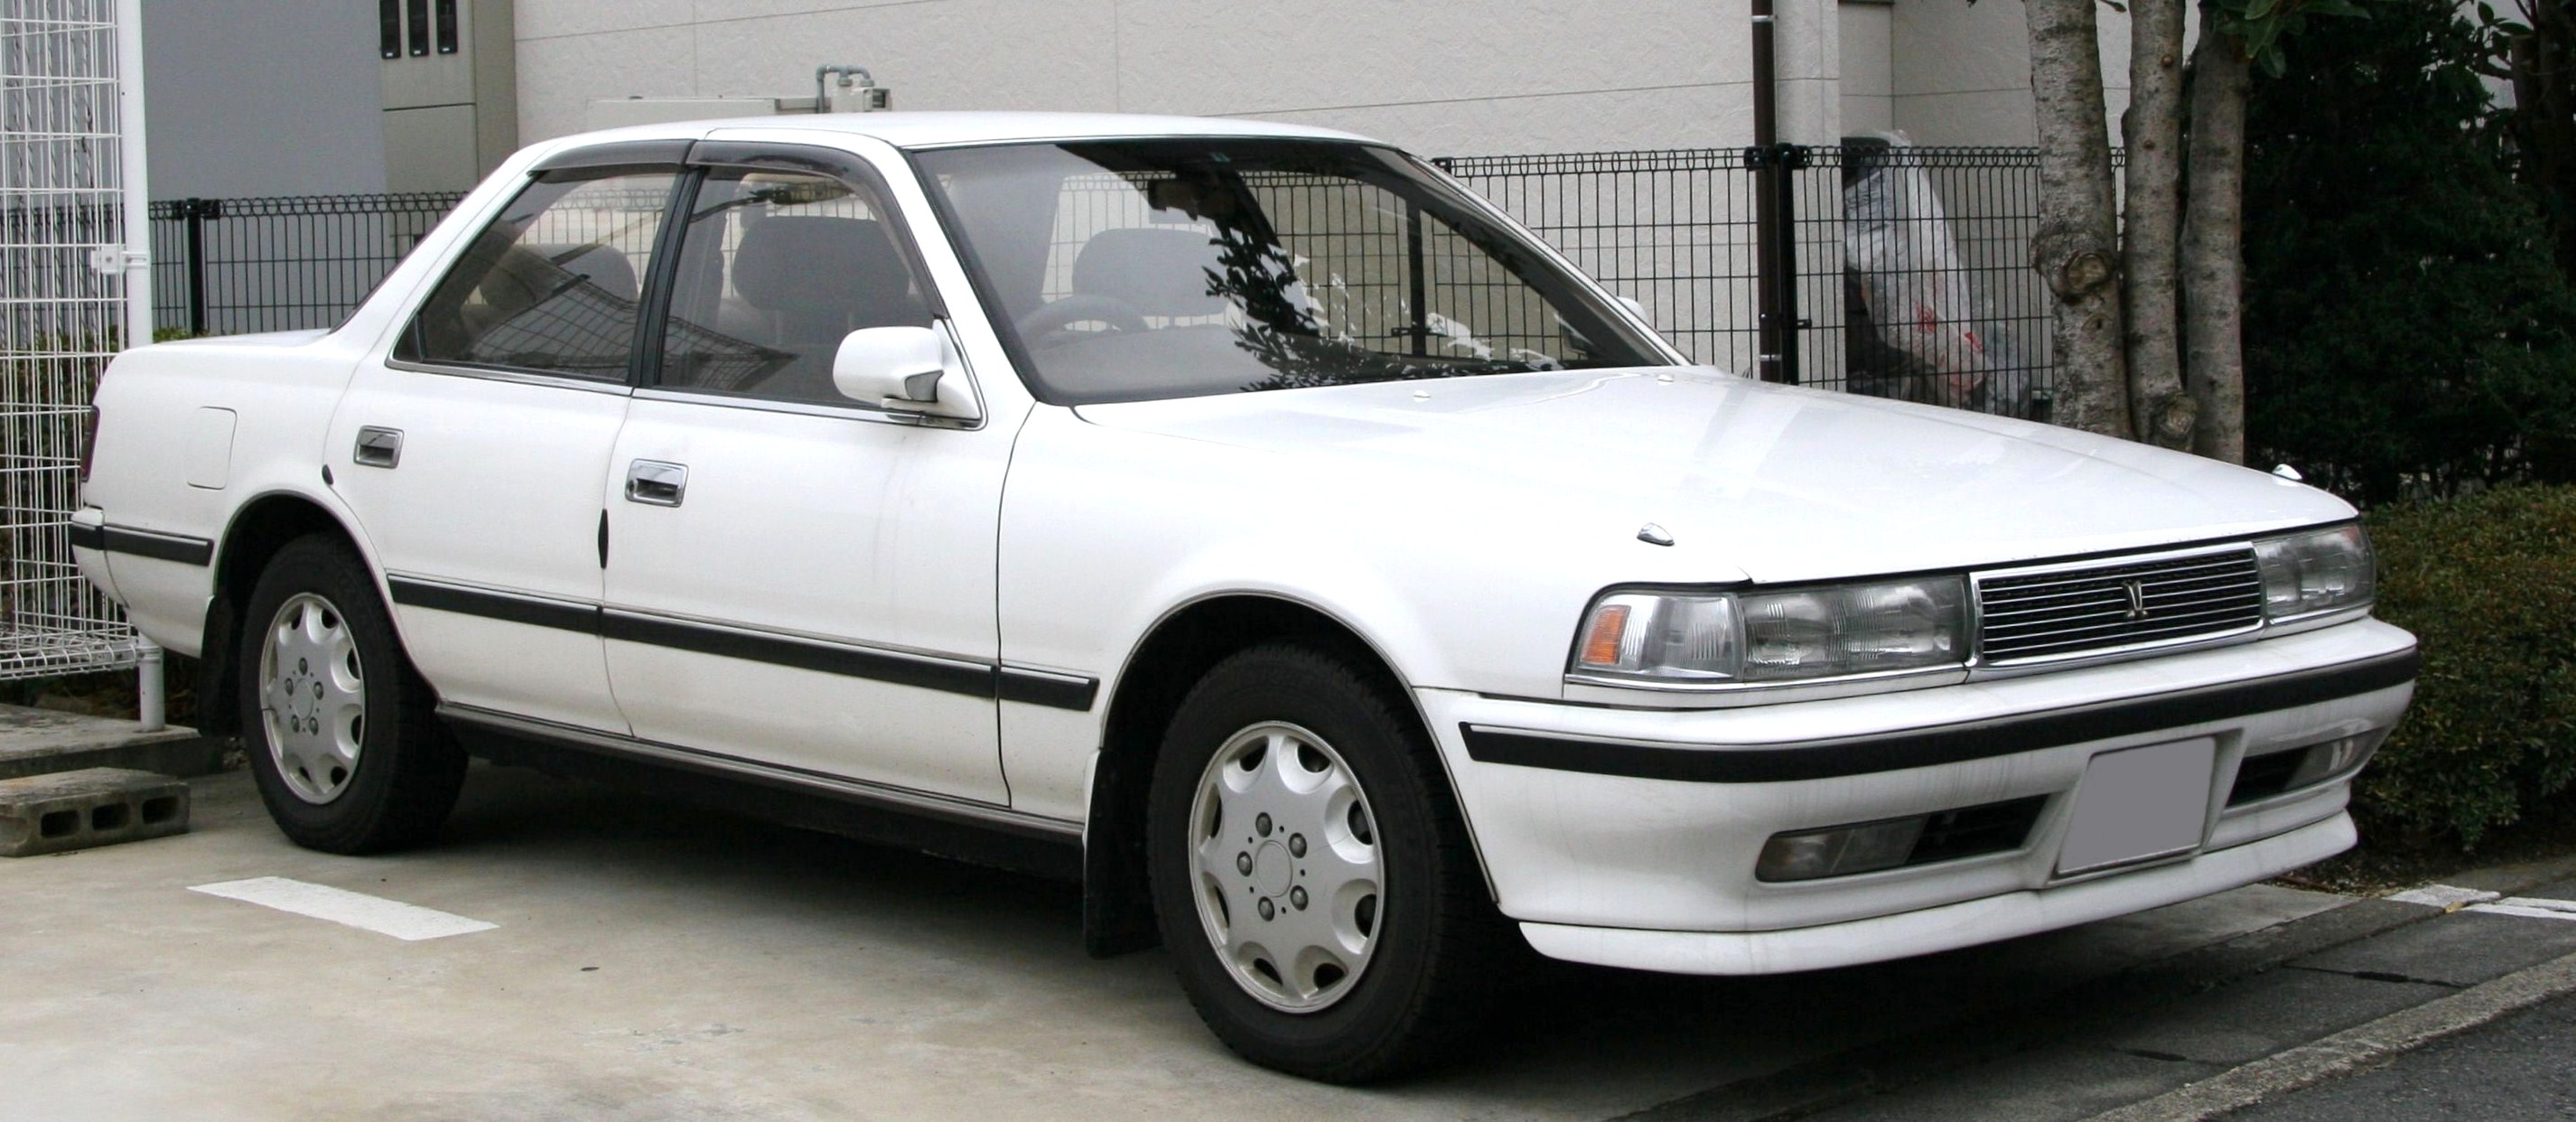 toyota cresta car models